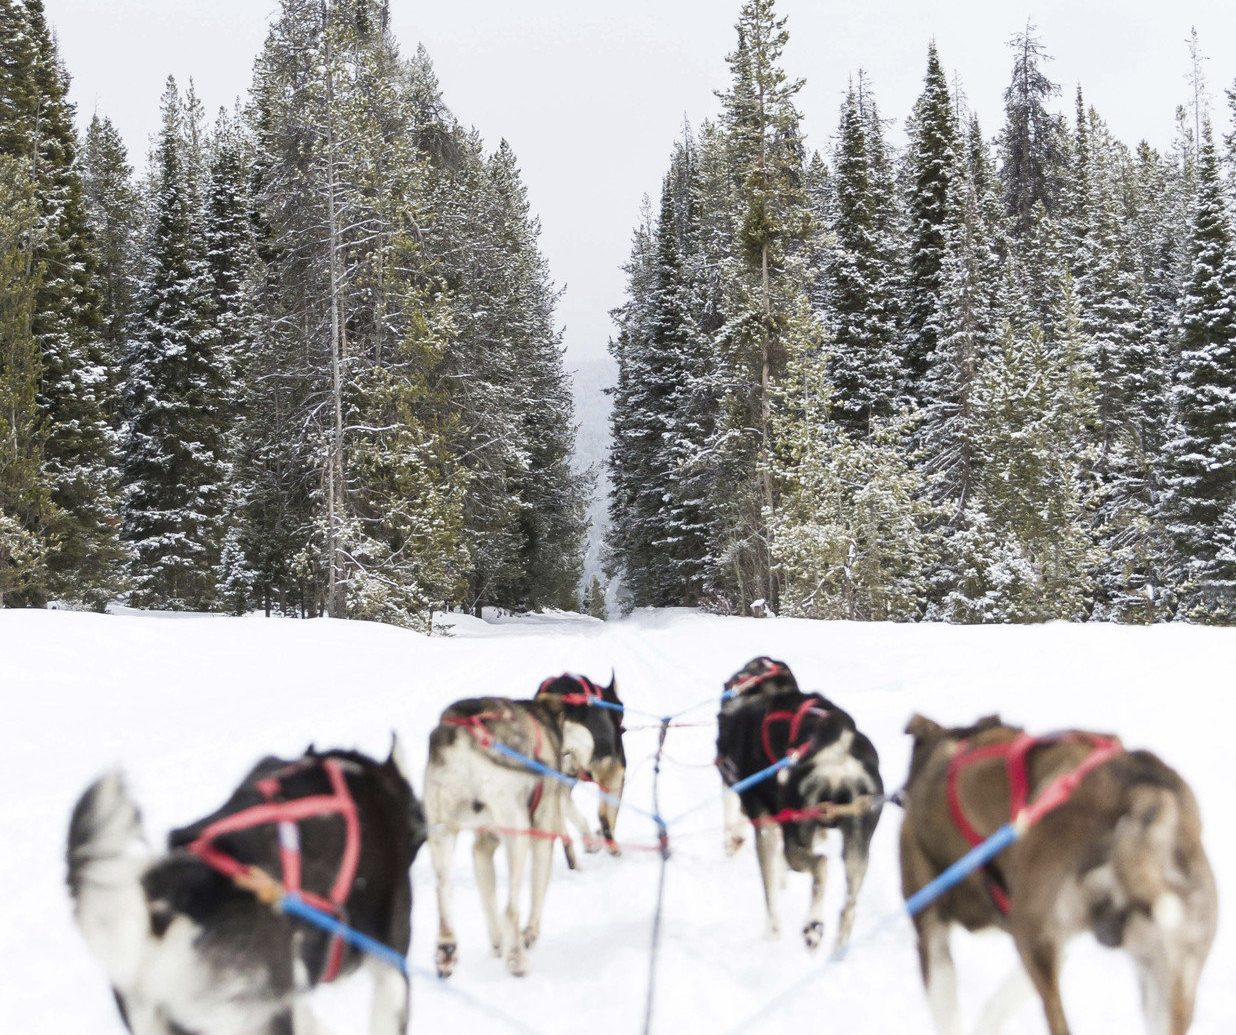 Hotels Luxury Travel Mountains + Skiing tree transport outdoor snow sled Dog dog sled vehicle land vehicle mushing skiing sled dog racing Winter sled dog animal sports dog like mammal line